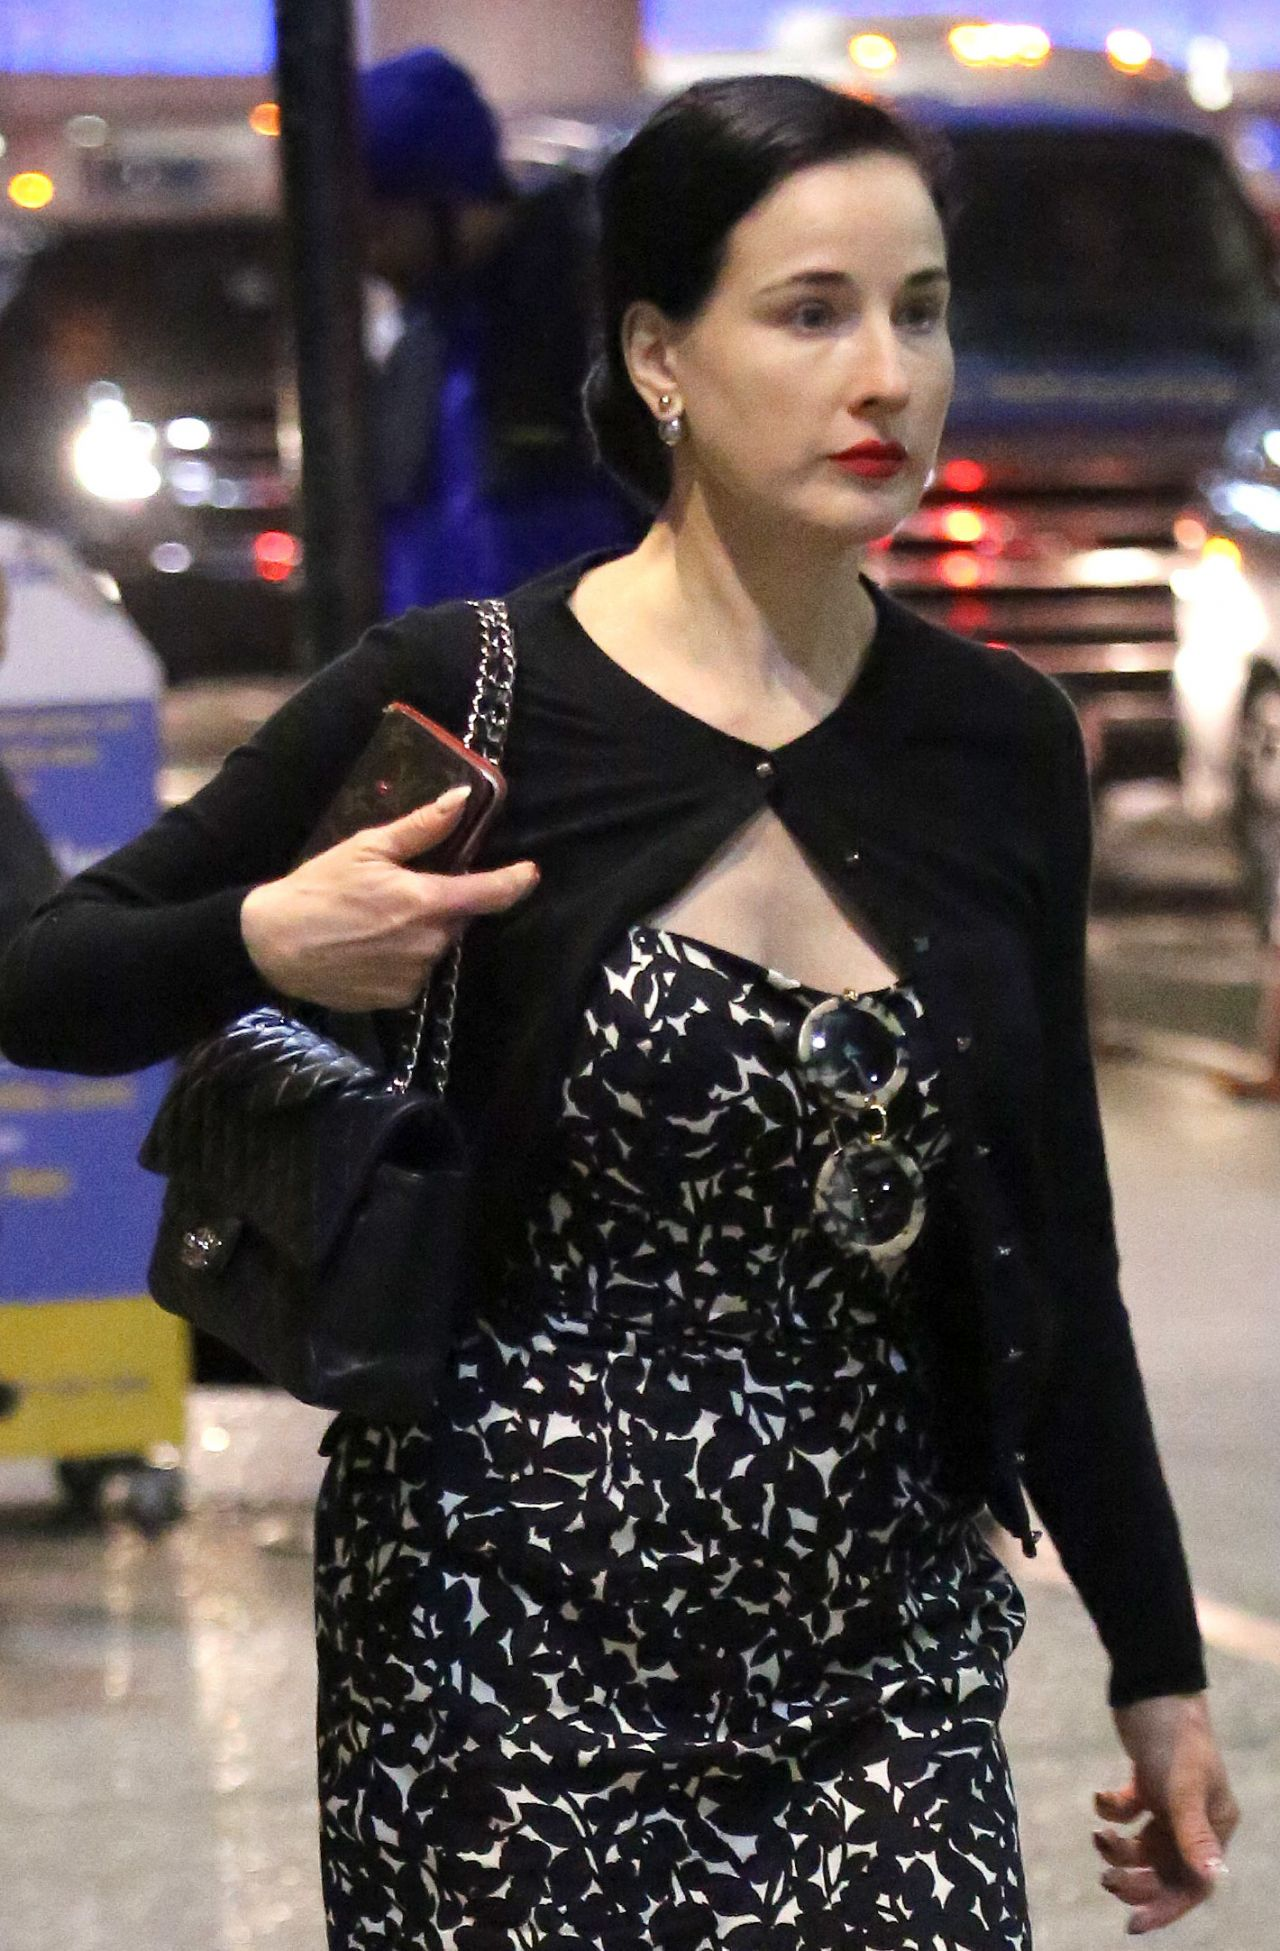 eea3fa412c1 Dita Von Teese at LAX in Los Angeles 03 28 2018